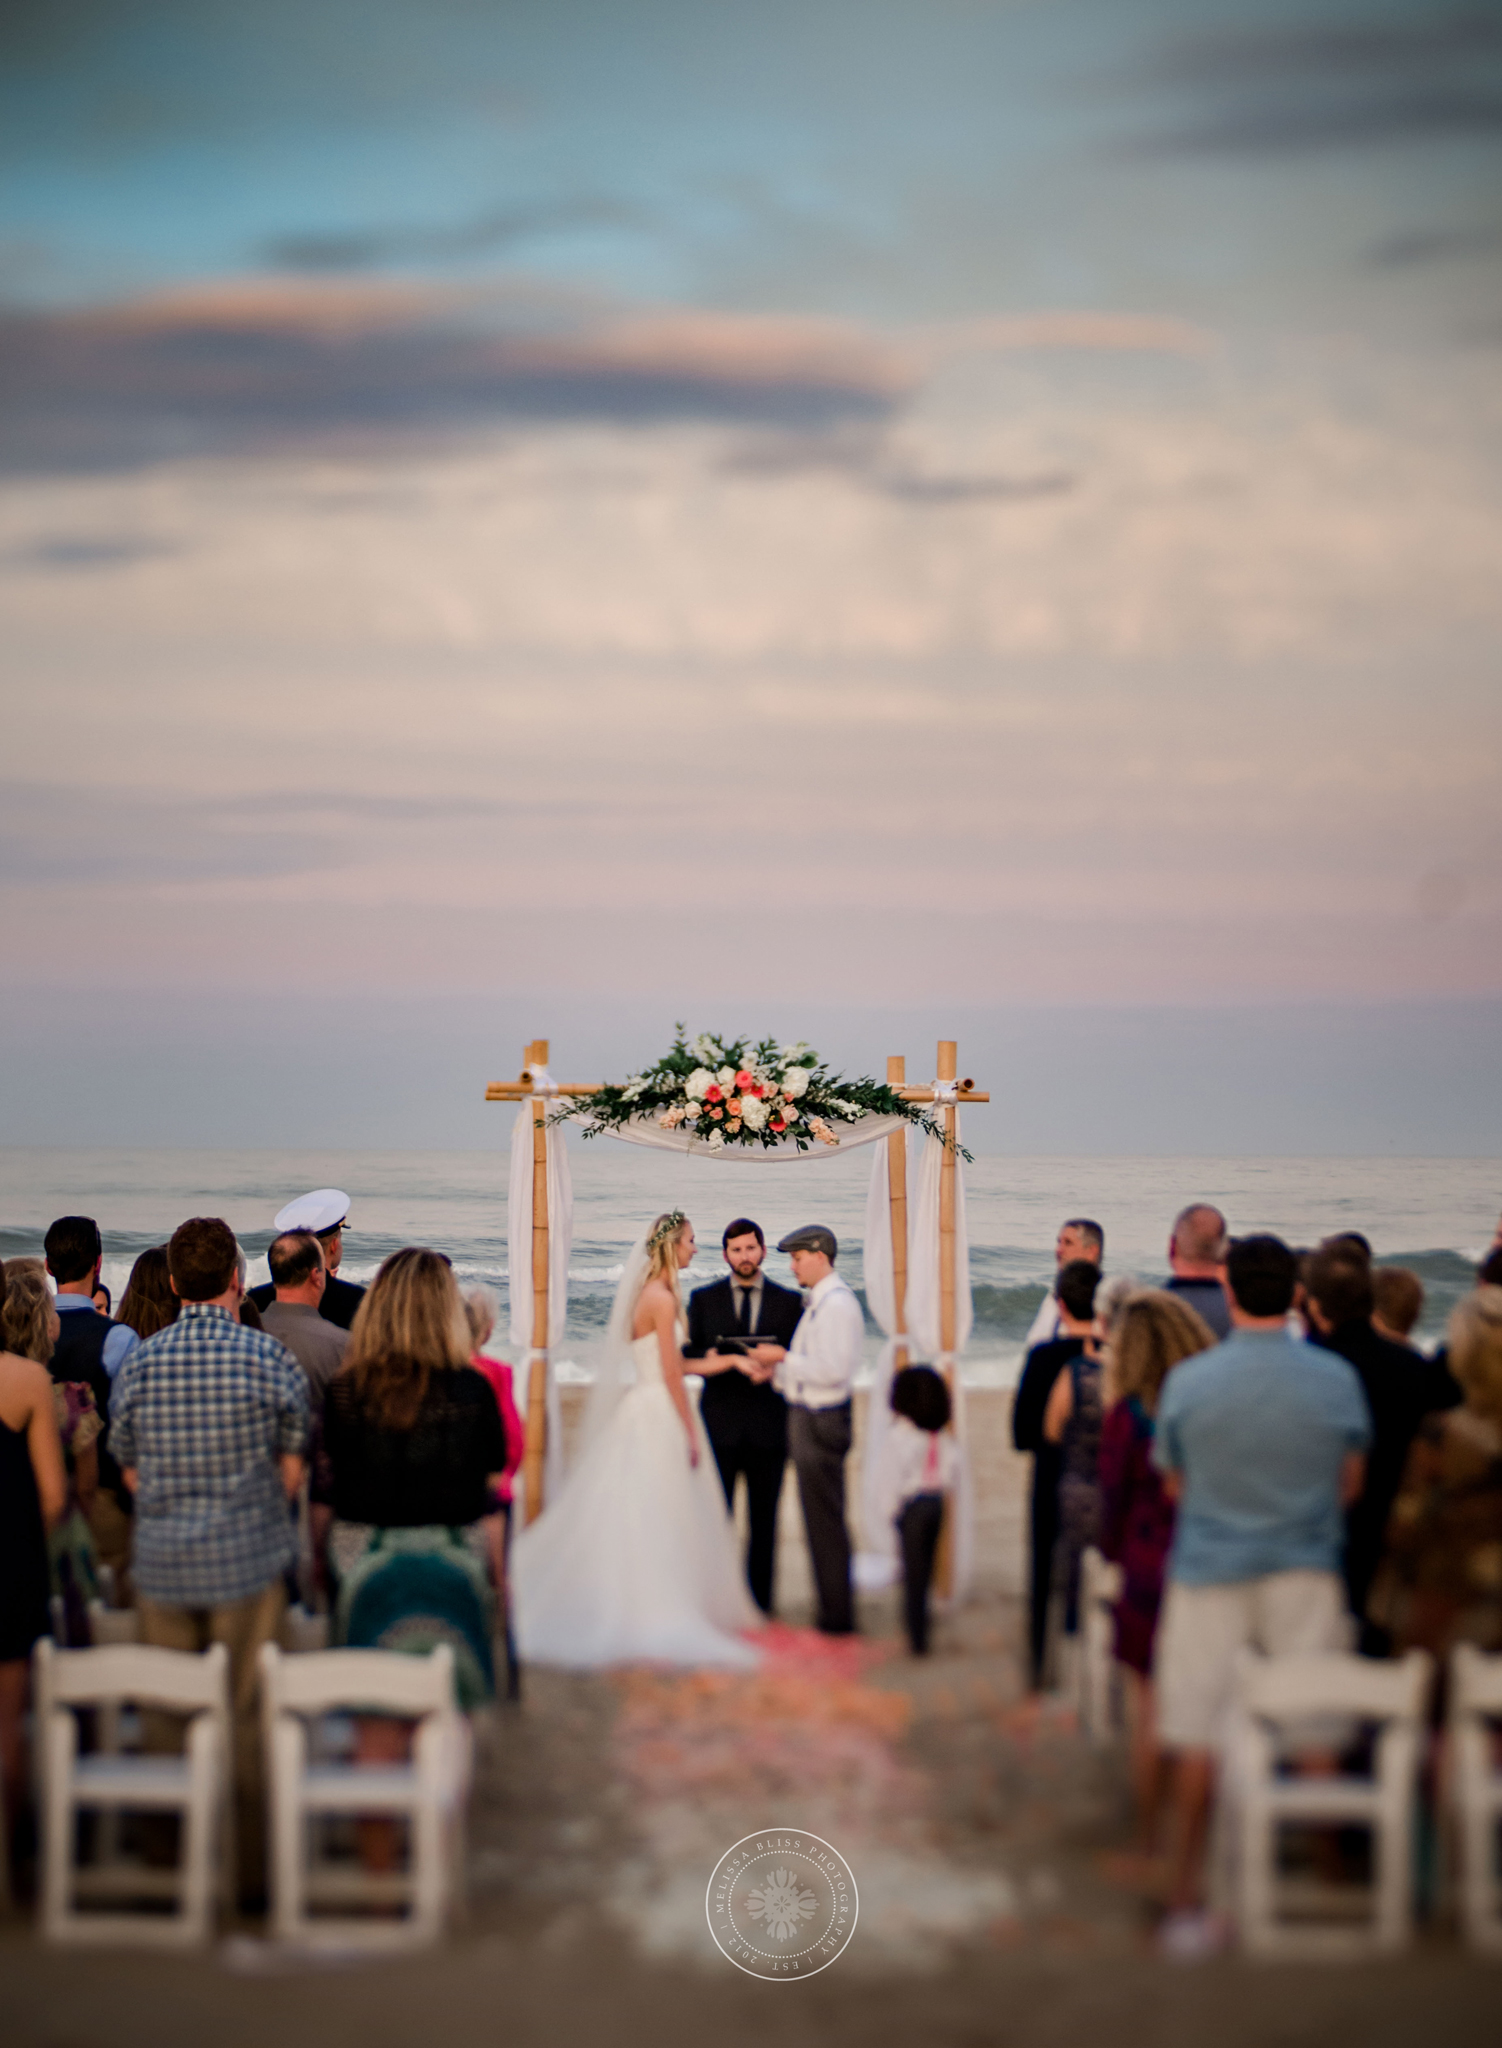 virginia-beach-wedding-photographers-shifting-sands-couple-at-sunset-ceremony-melissa-bliss-photography.jpg